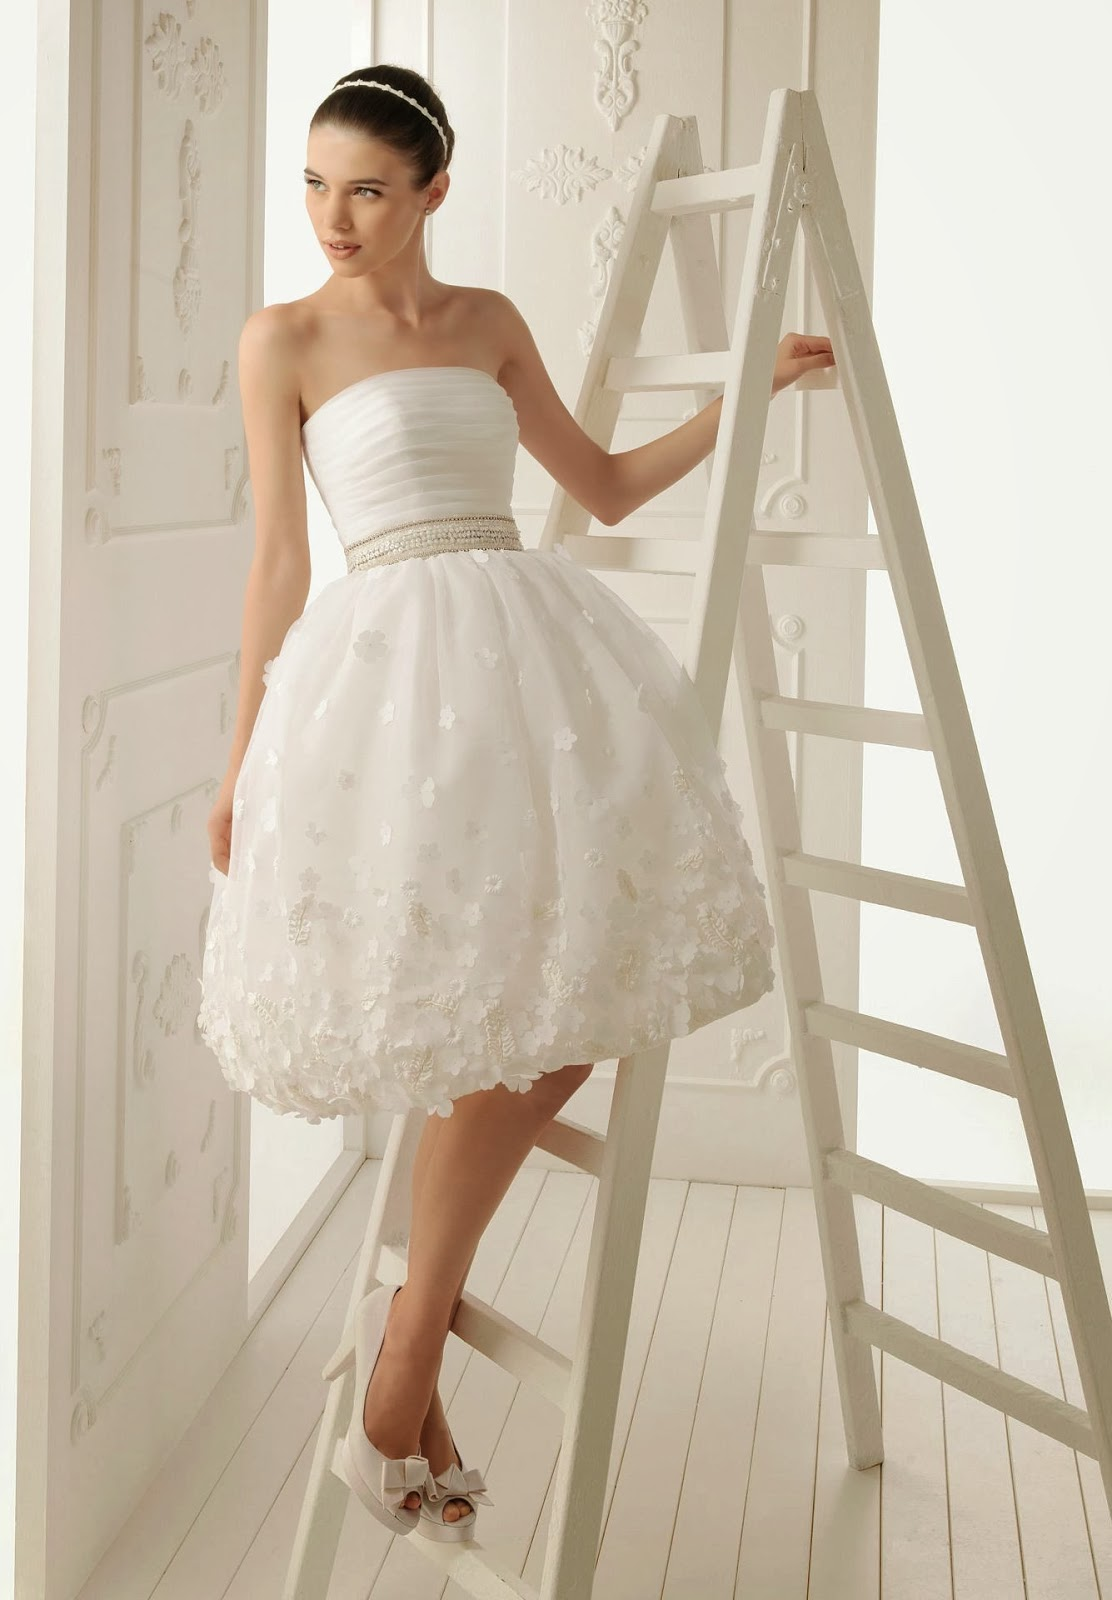 Ball gown wedding dress for petite : Whiteazalea ball gowns short gown wedding dresses make you like